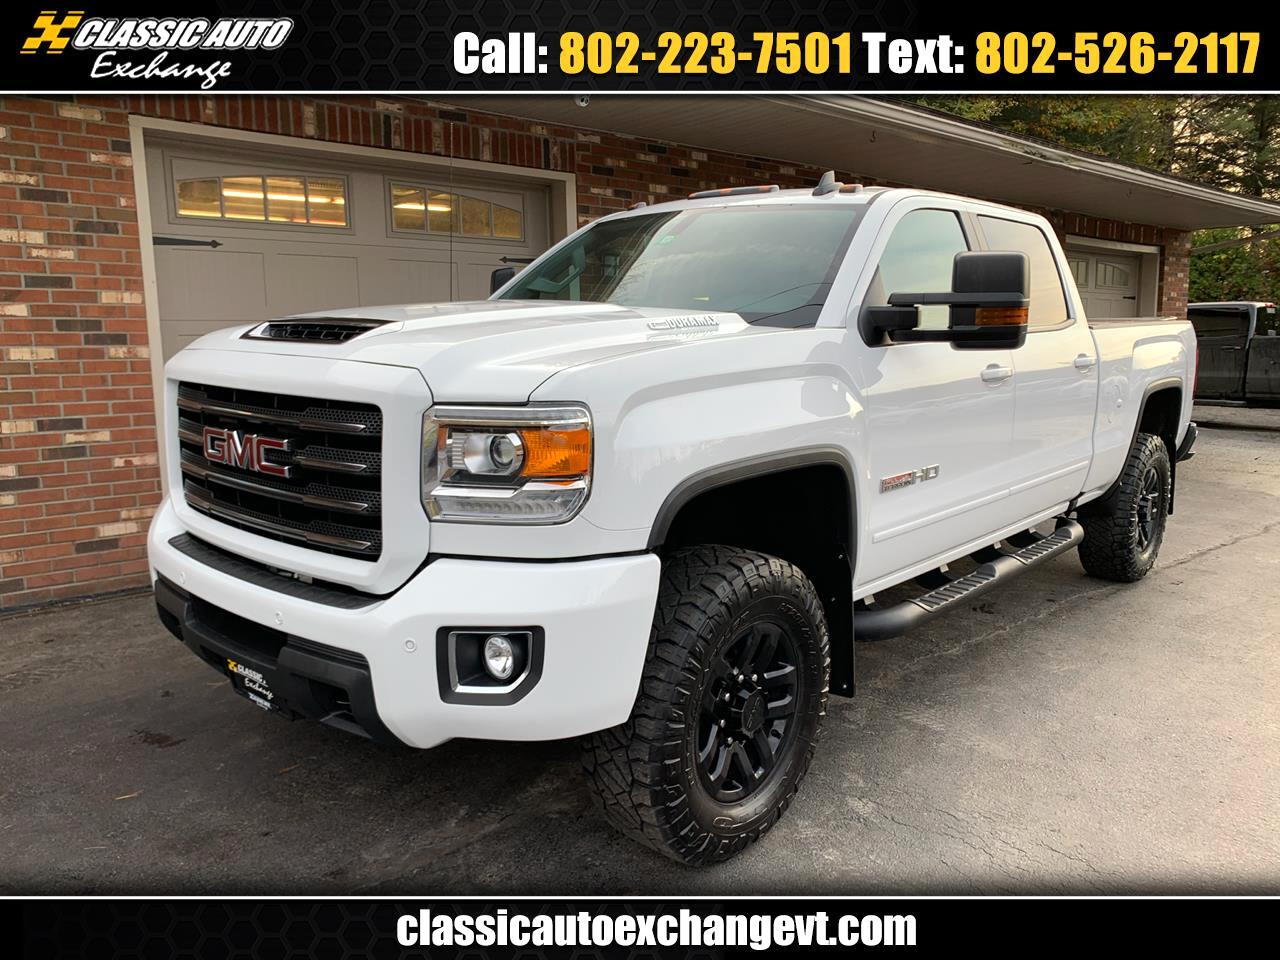 2017 GMC Sierra 2500HD SLT CREW CAB 4WD ALL TERRAIN PACKAGE